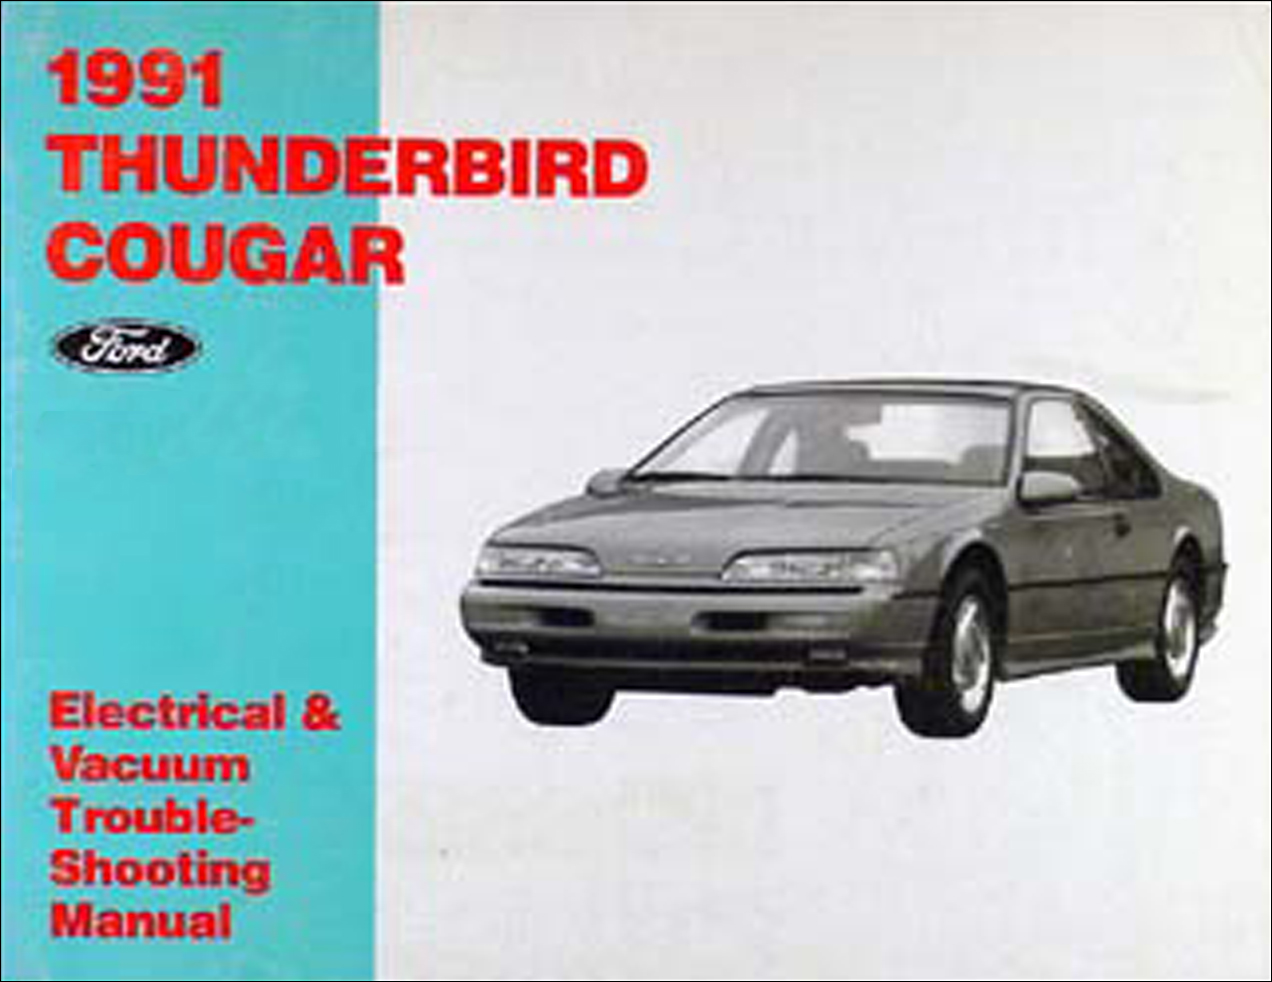 1991 Ford Thunderbird Mercury Cougar Electrical Troubleshooting Manual